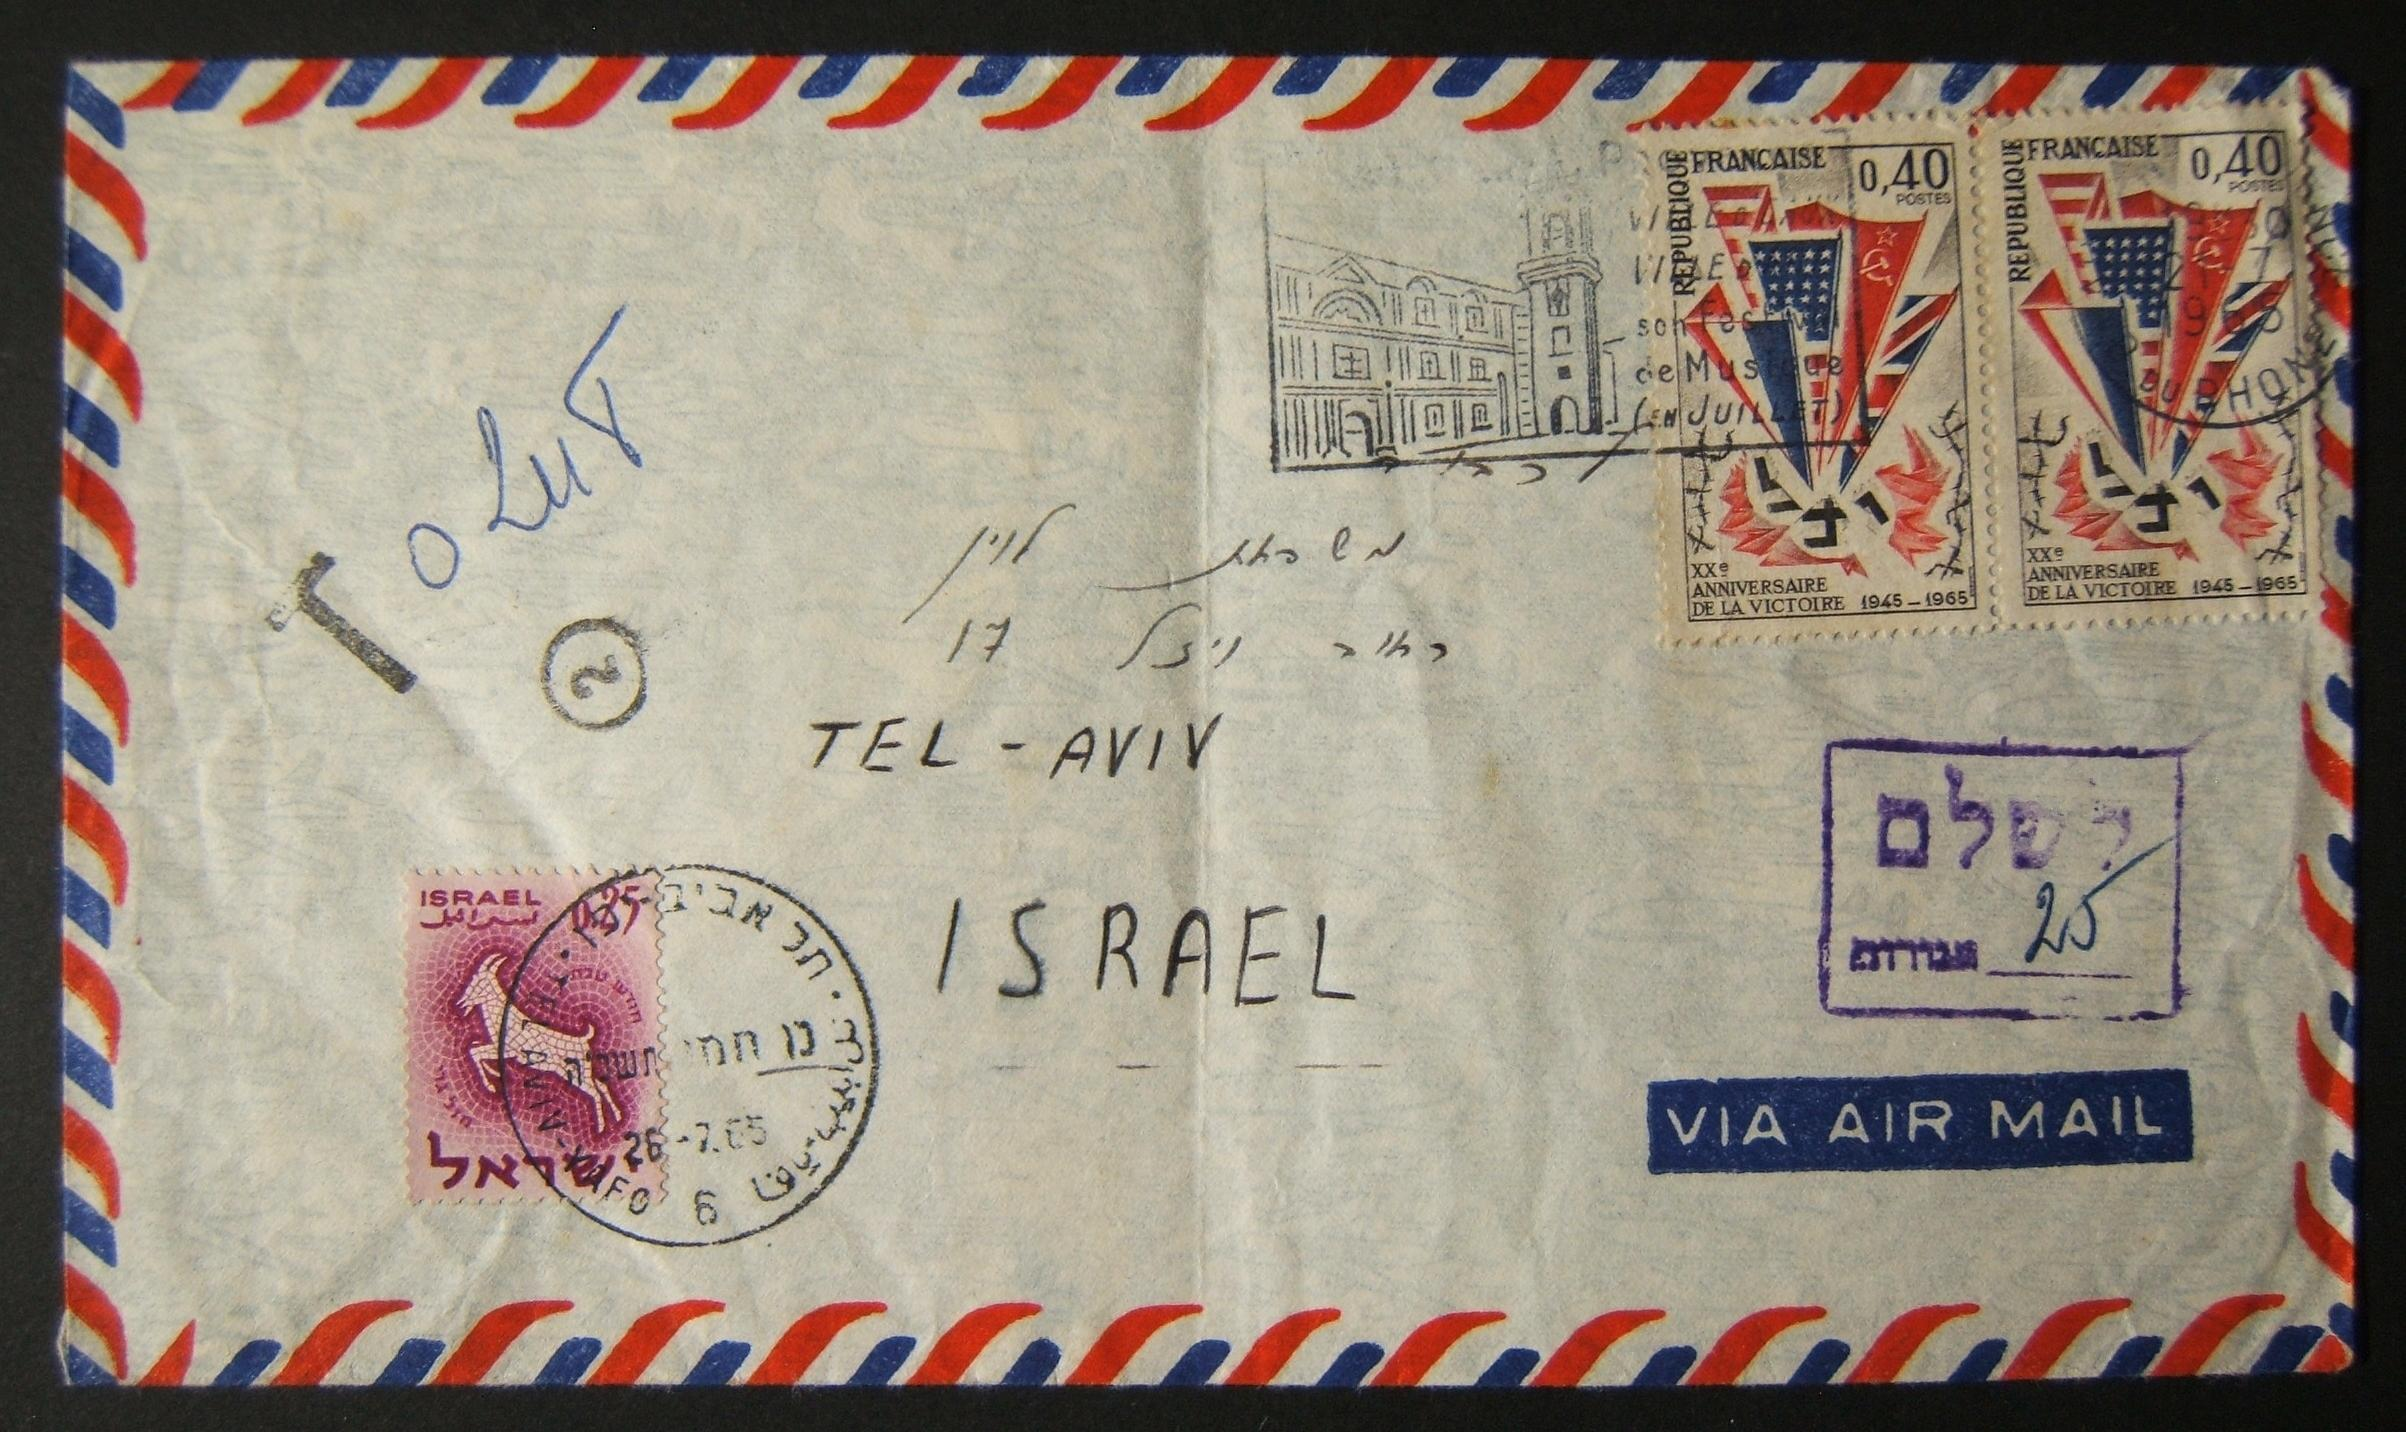 1965 incoming French taxed mail: 21-7-1965 airmail cover ex FRANCE (return address Paris) to TLV underfranked at 0.80Fr and taxed 0.25L in Israel, paid 26-7-65 using 1961 Zodiac Ba